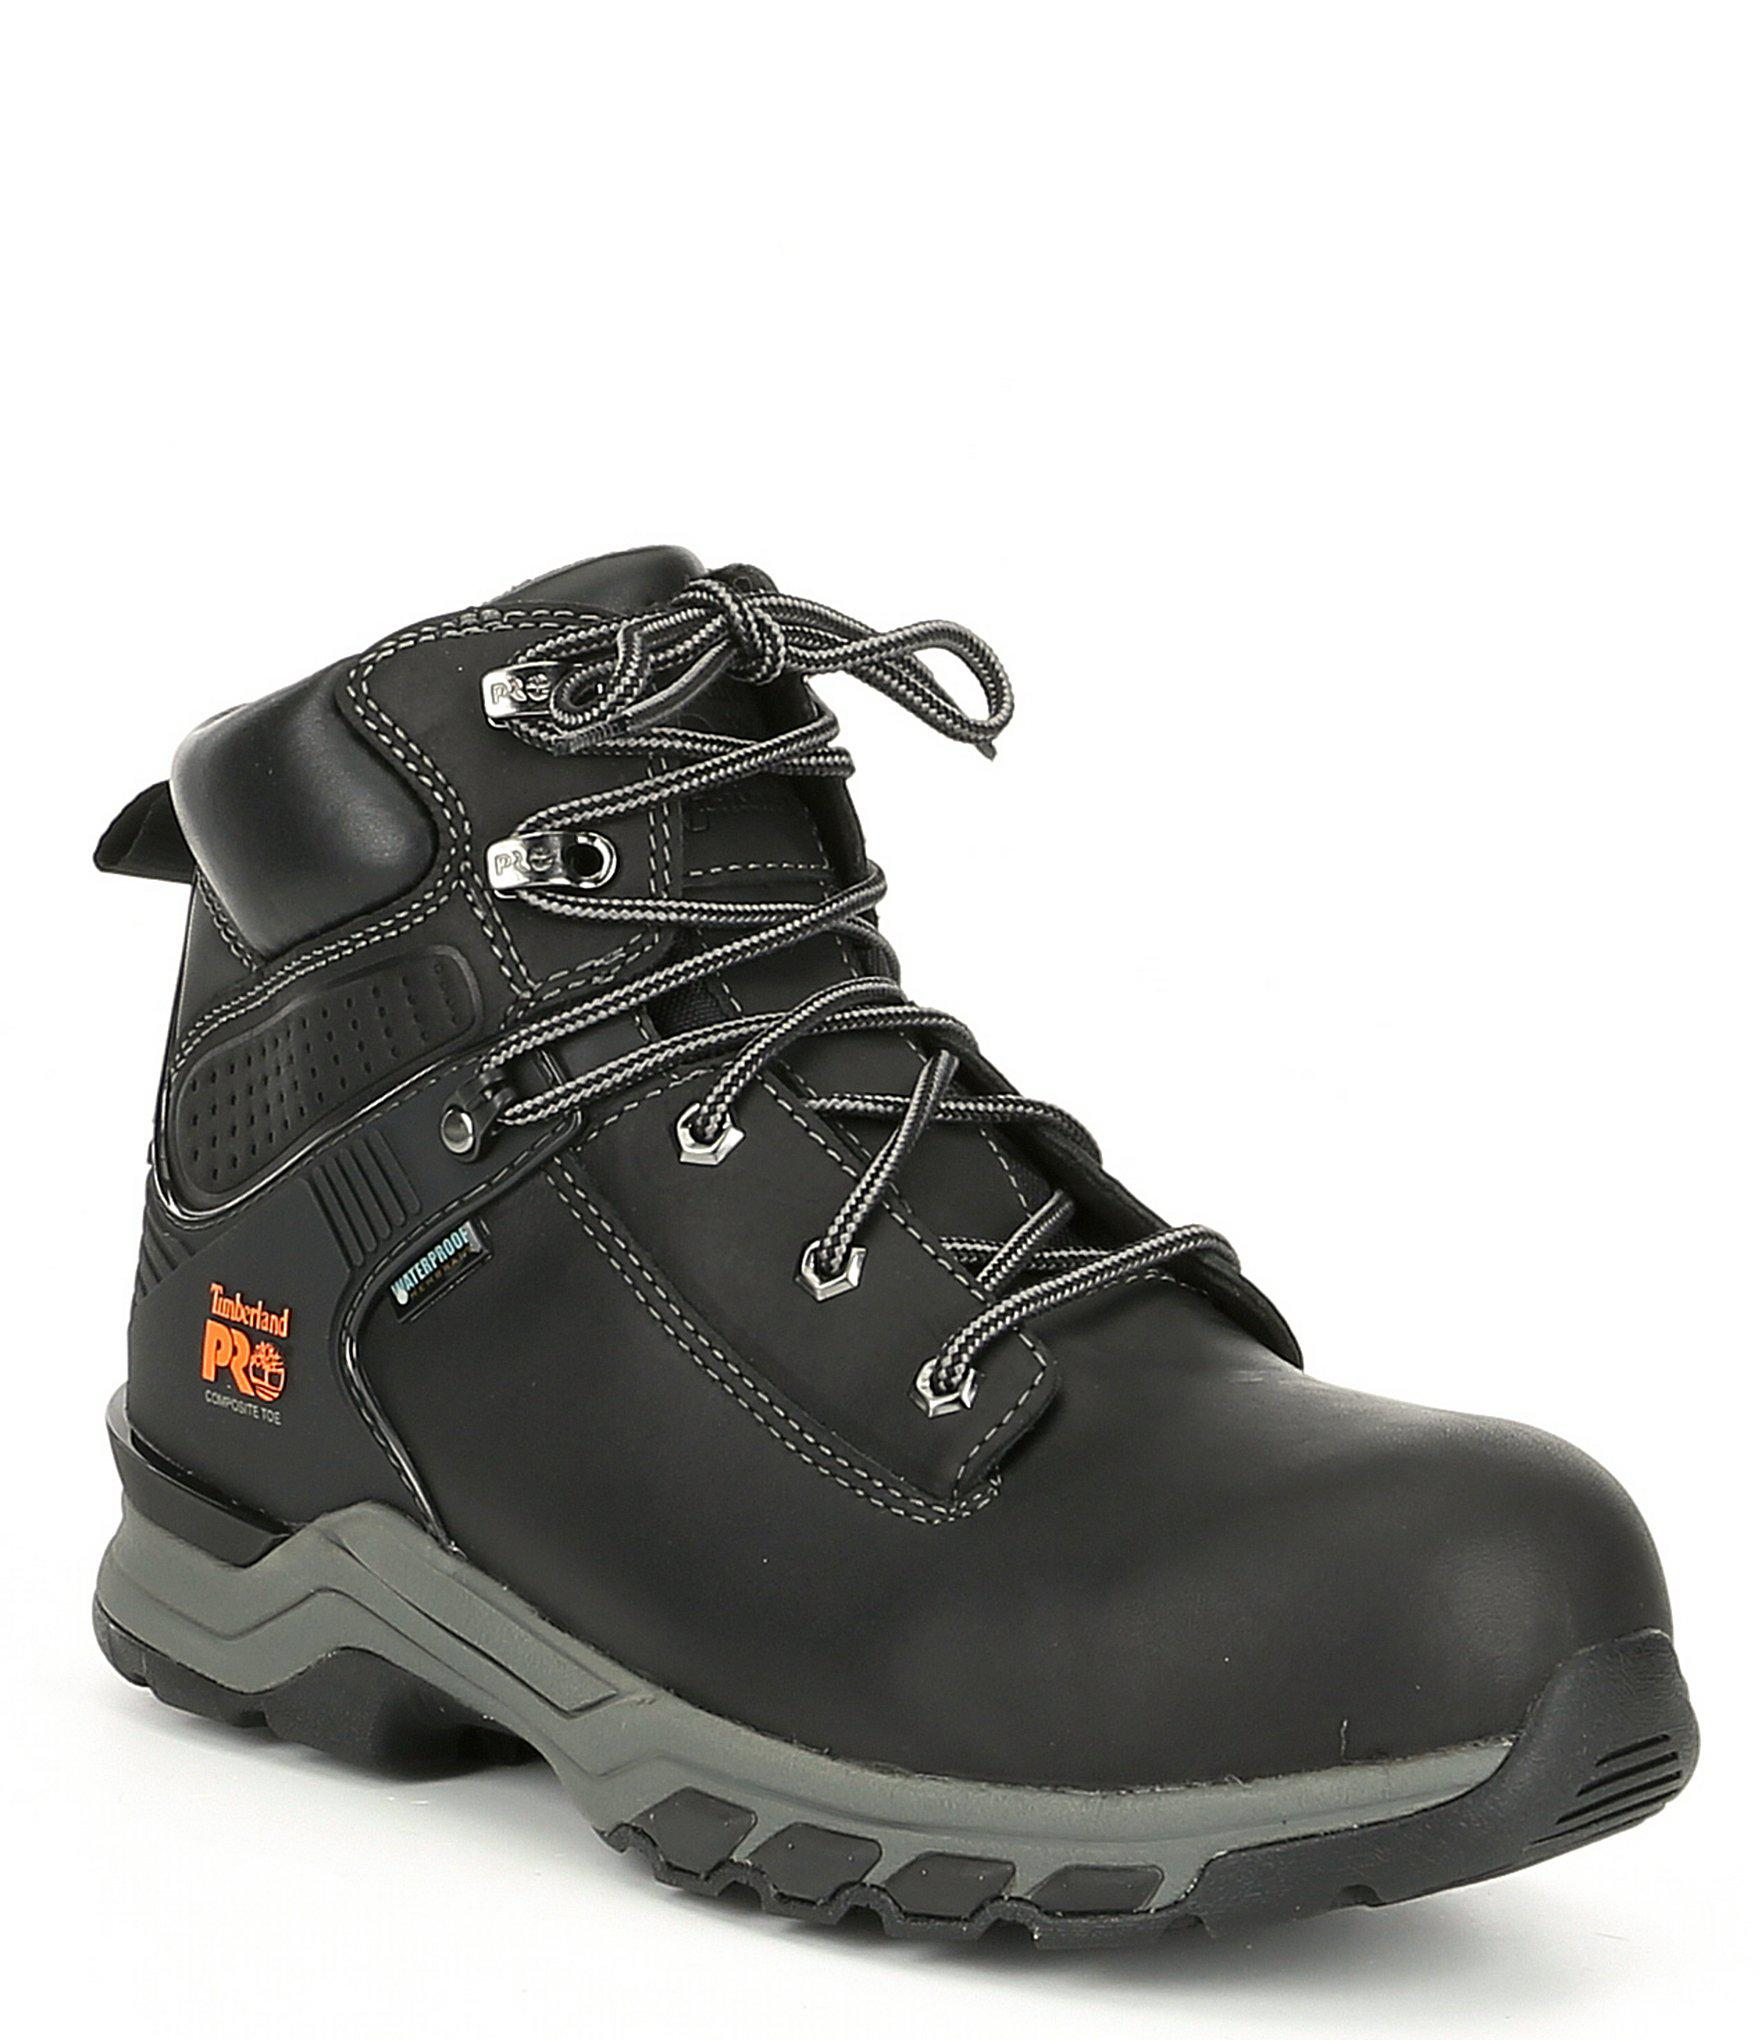 3cded185eda Lyst - Timberland Men's 6